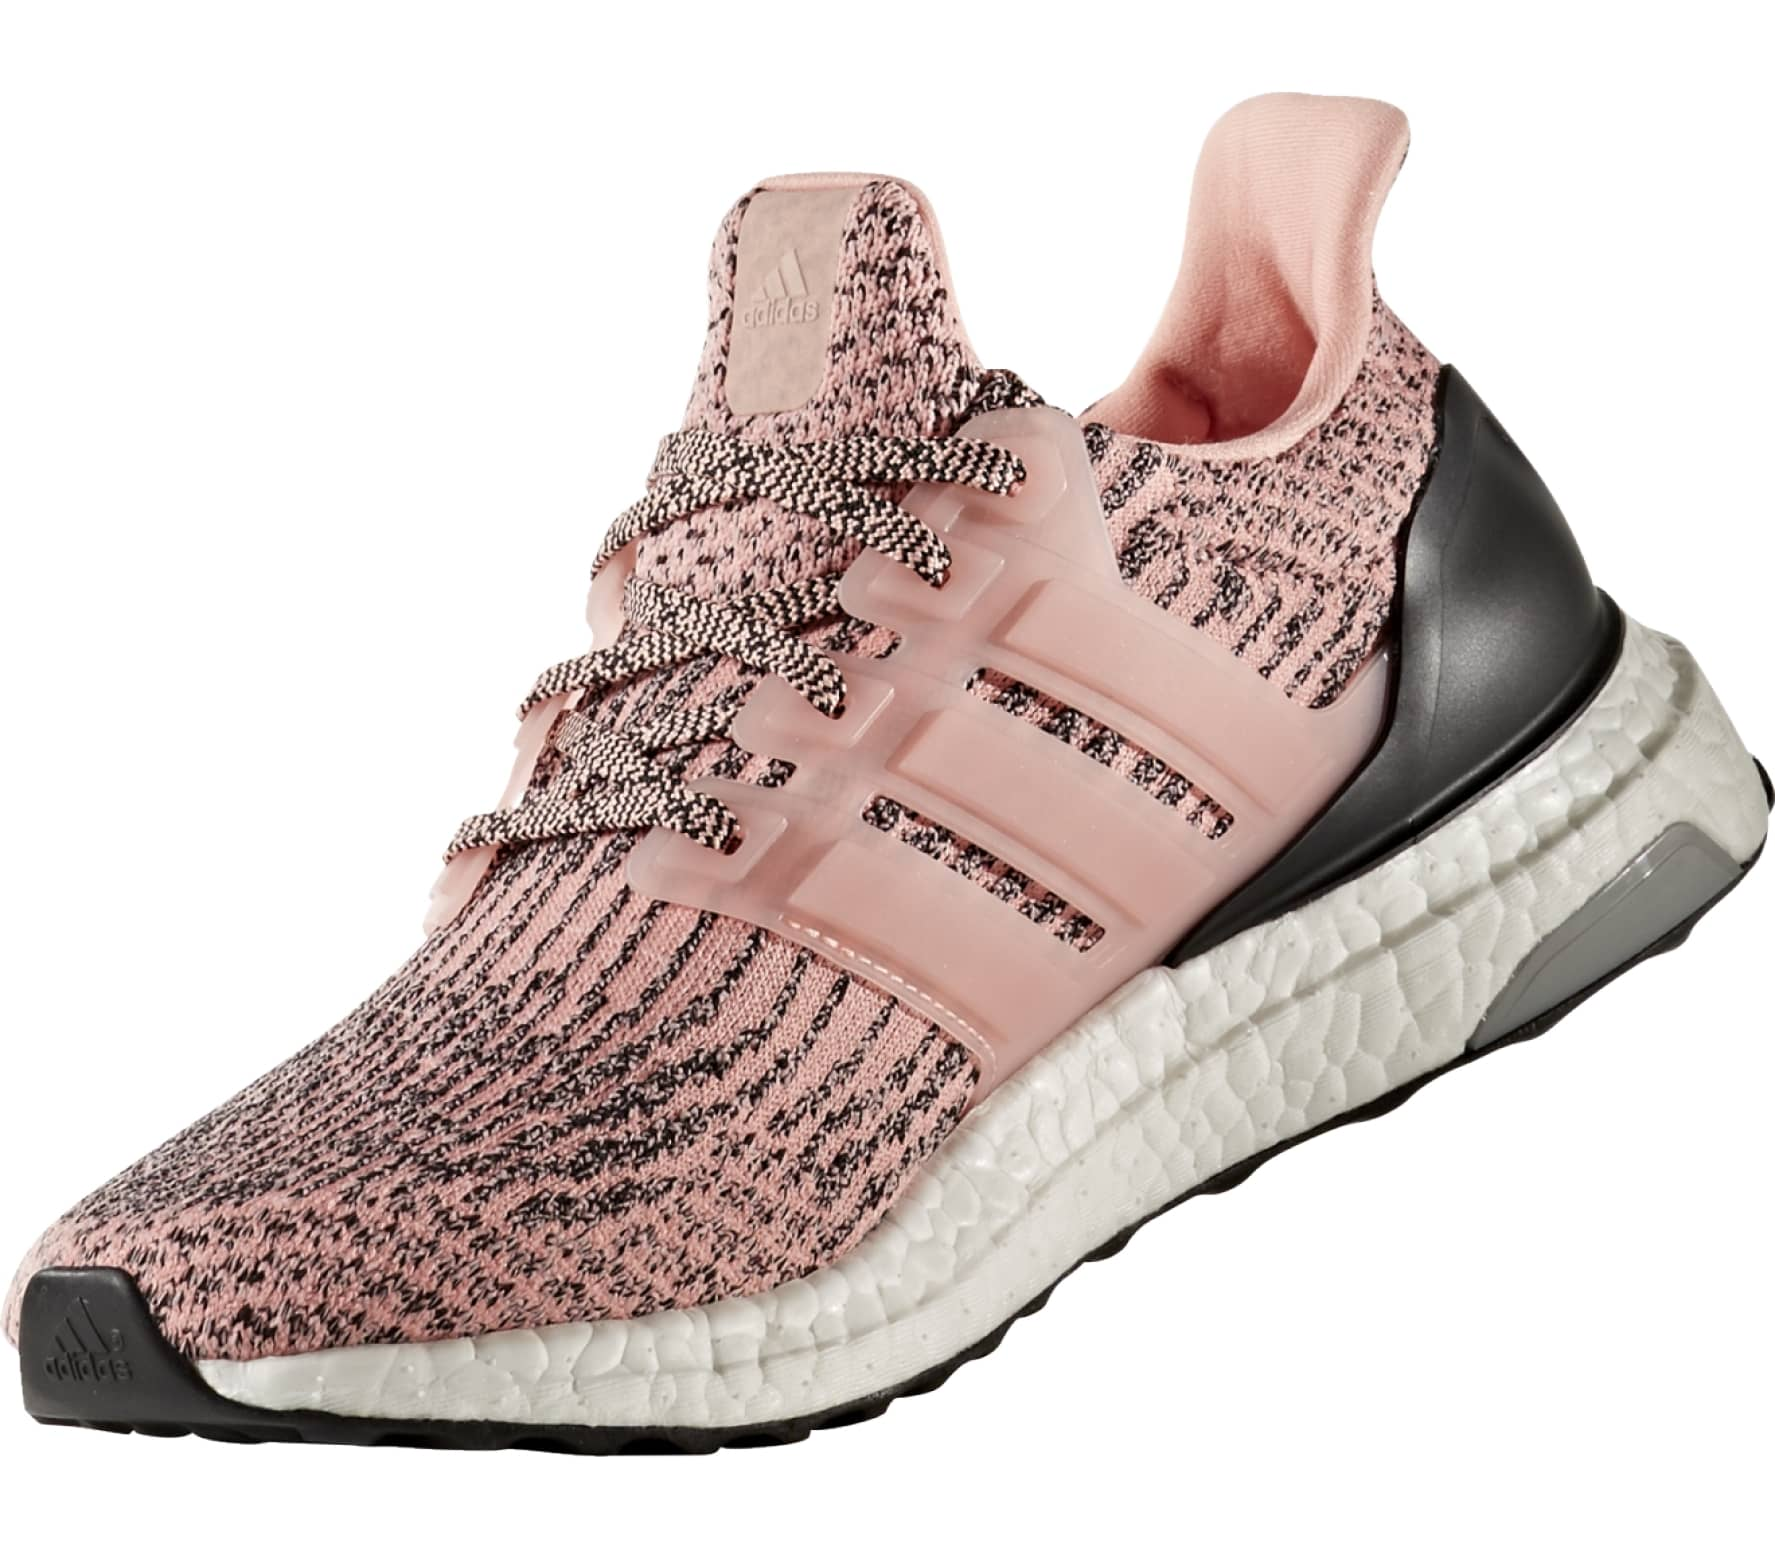 official photos ca8bb c36b4 Adidas - Ultra Boost womens running shoes (light pinkwhite)